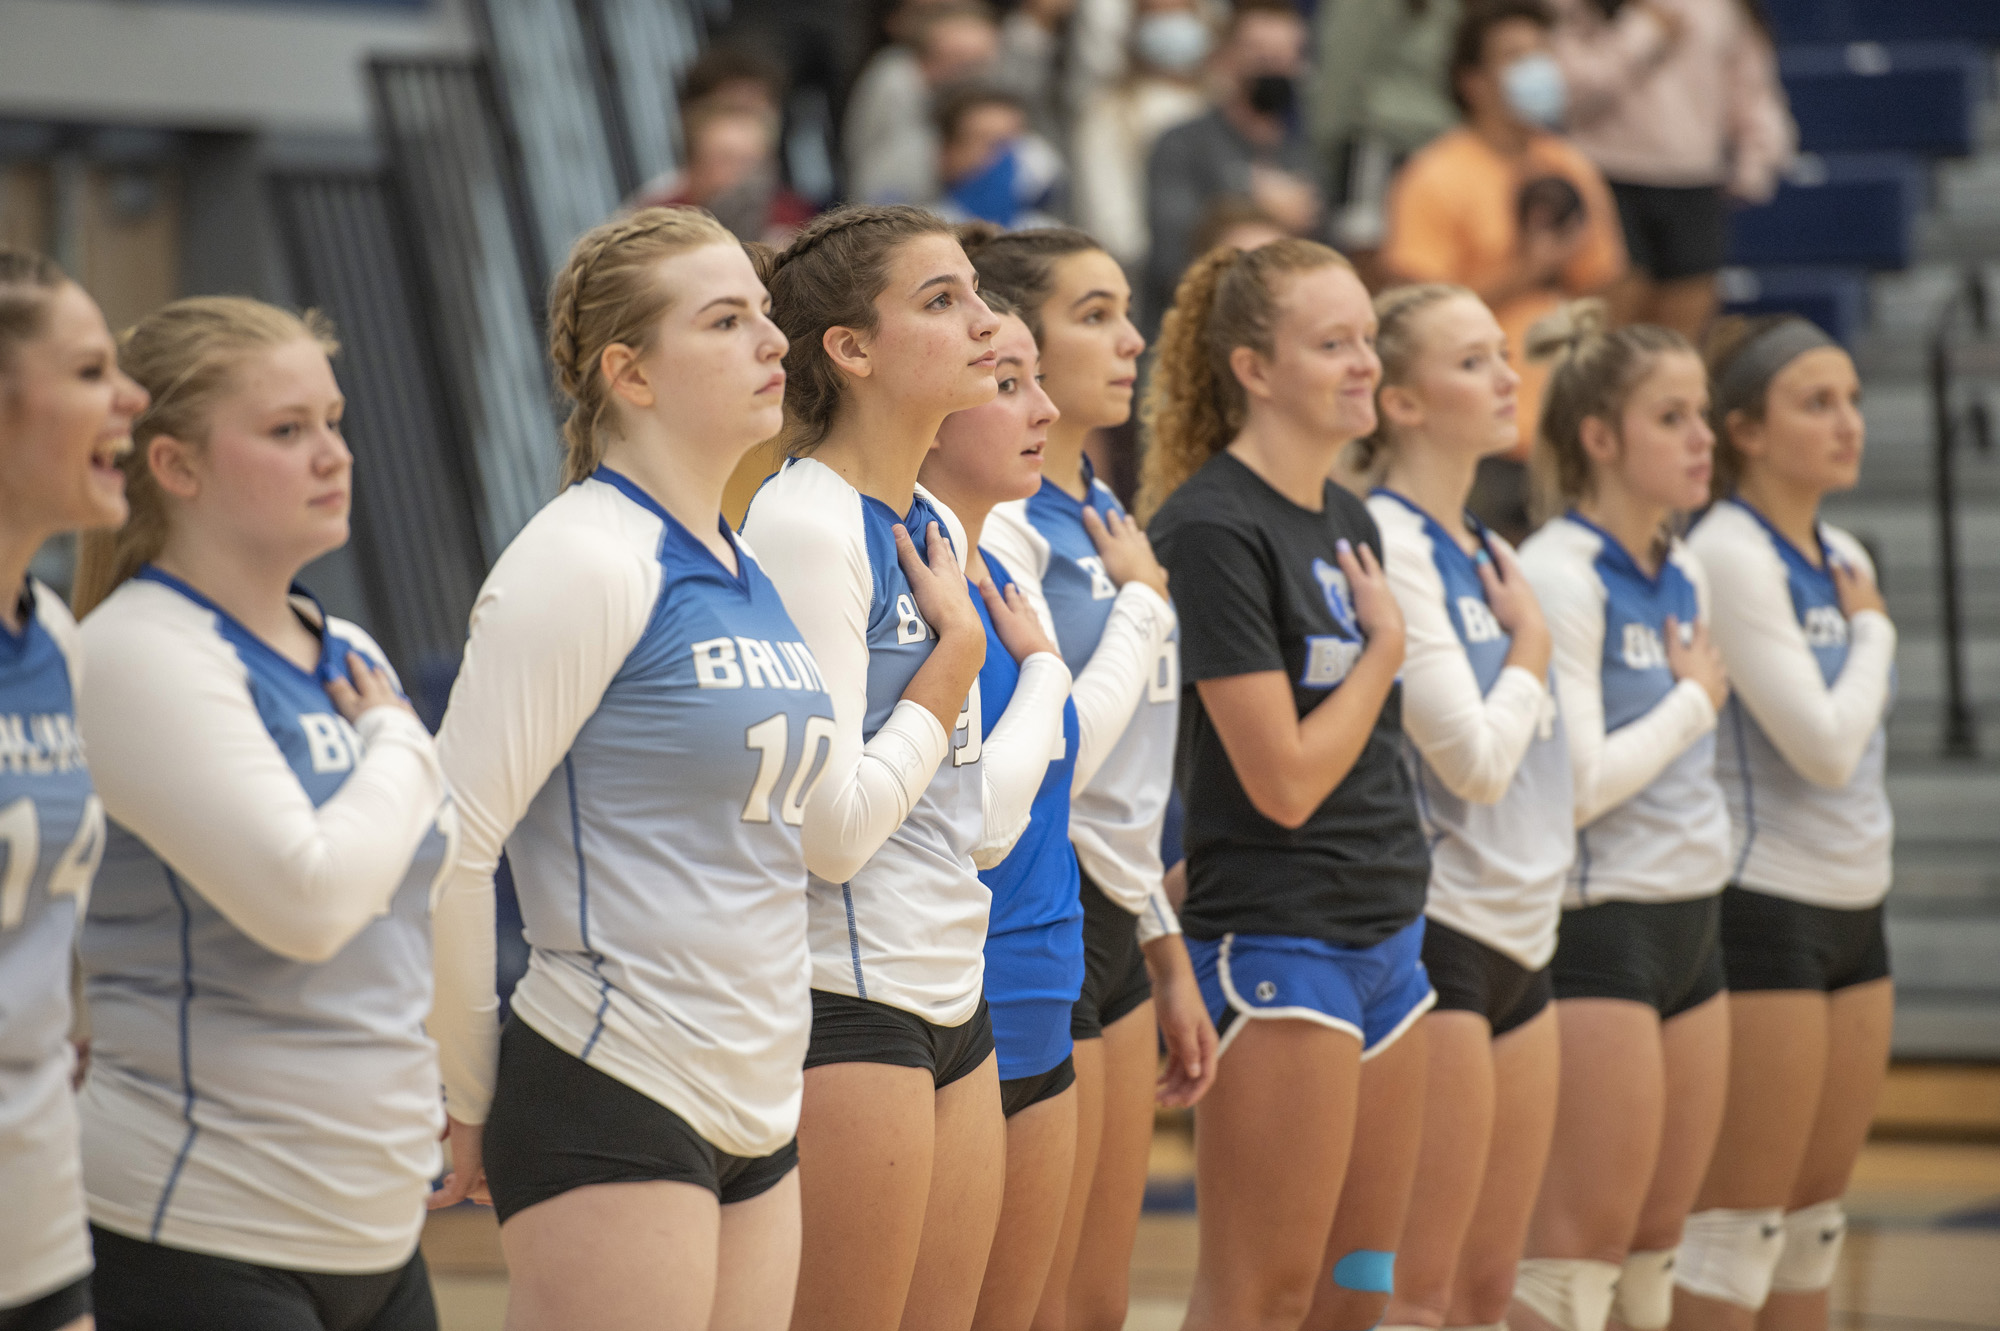 The women's volleyball team stands for the National Anthem before a home match.